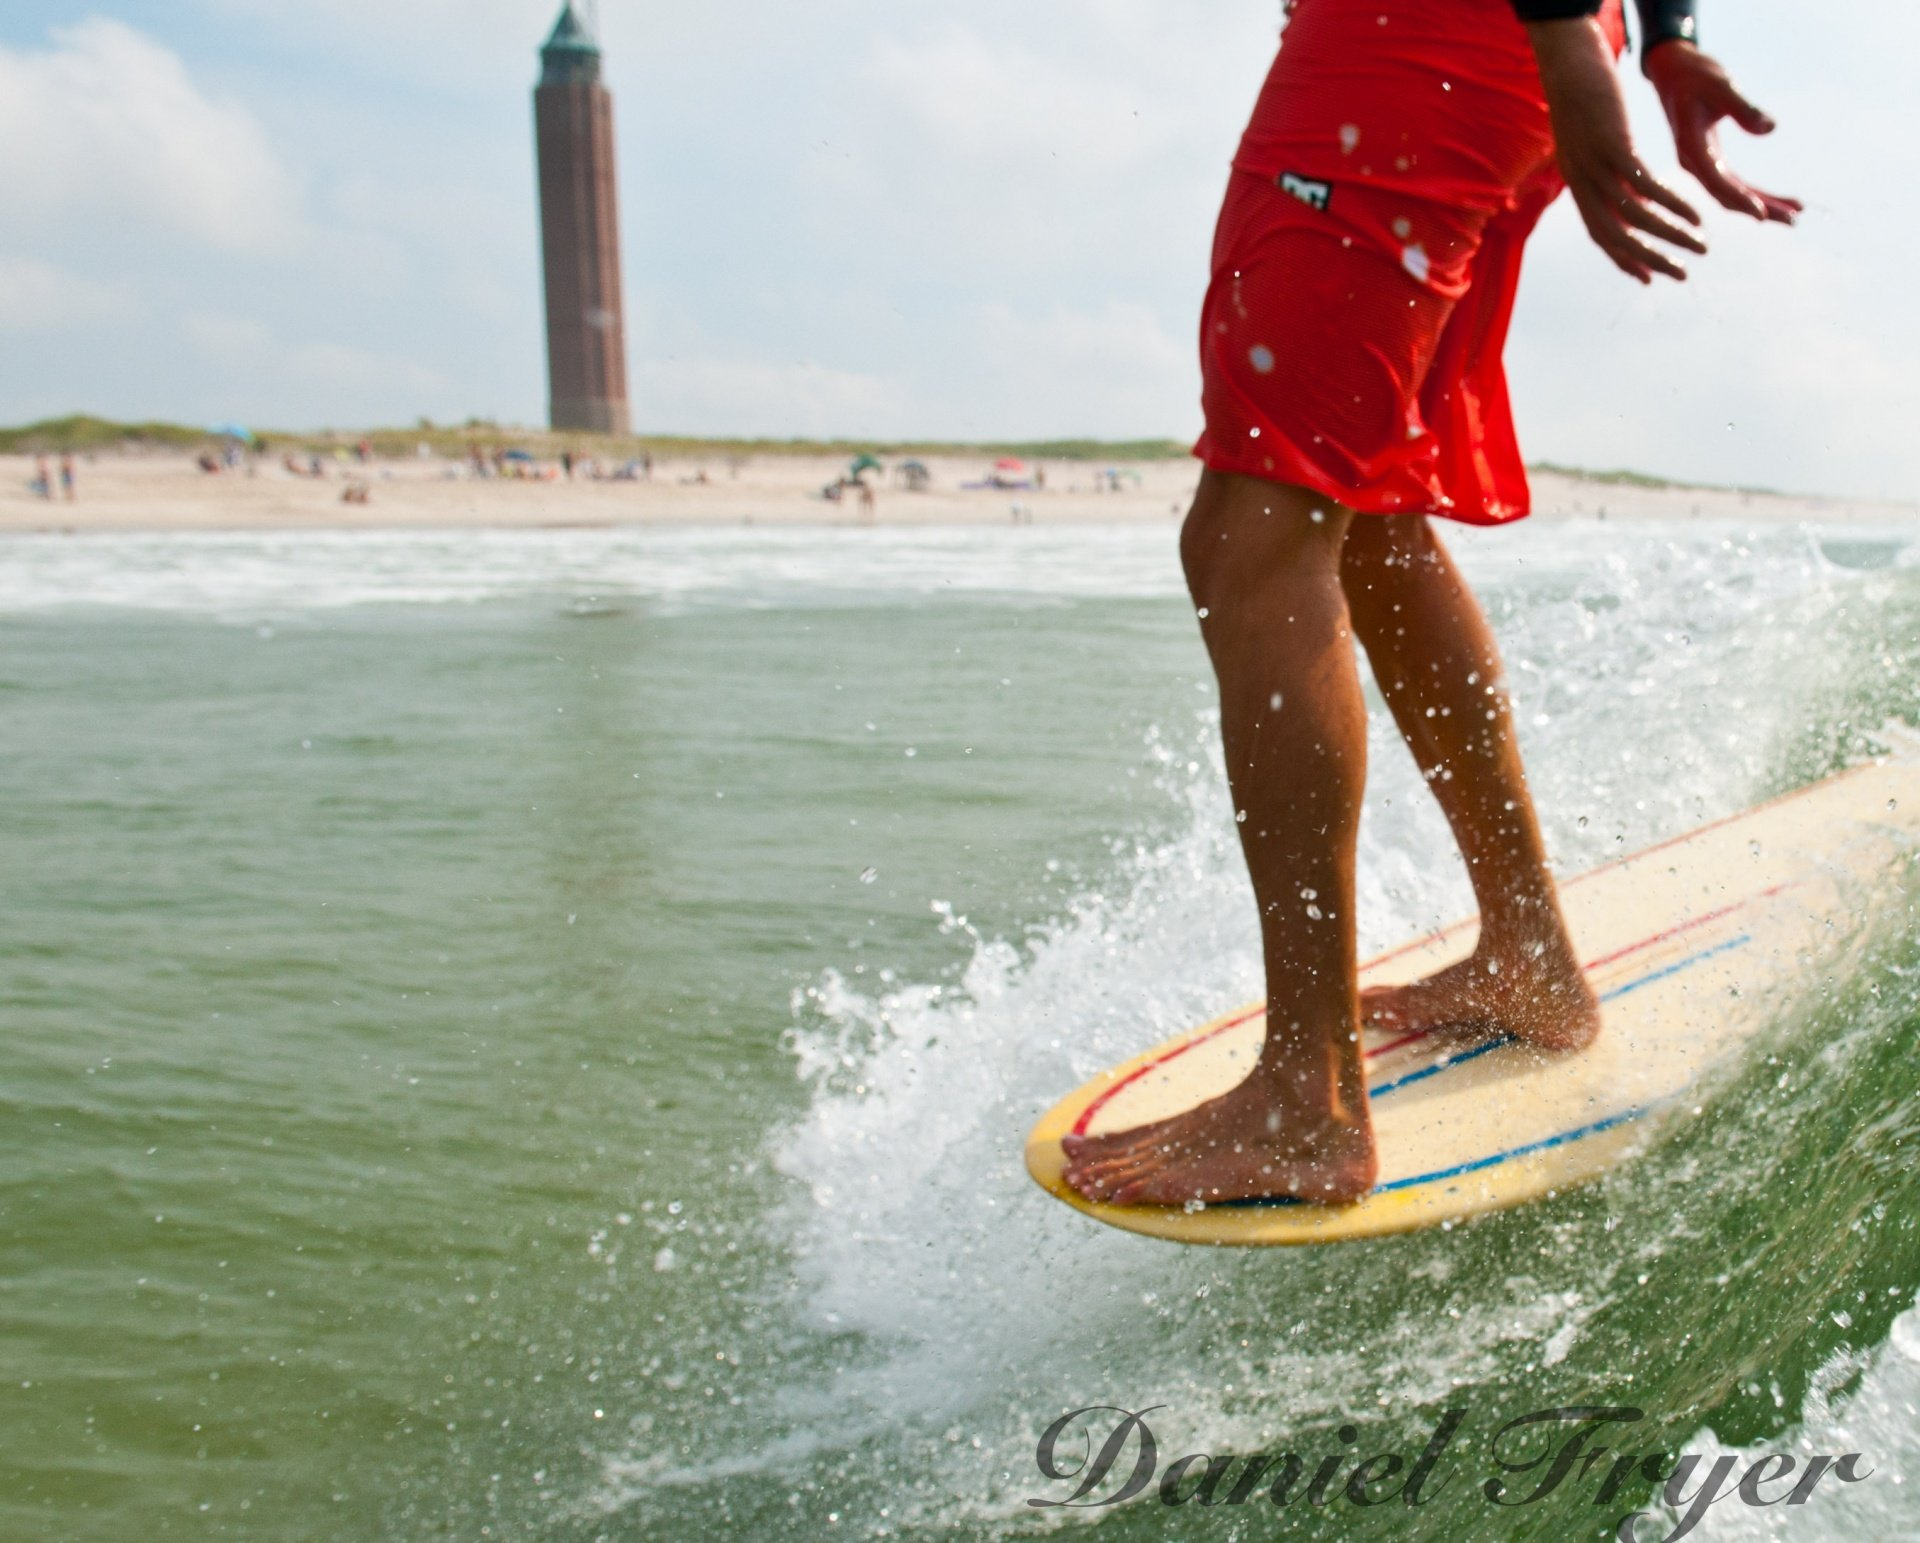 www.thesurfingphotog.com's photo of Robert Moses State Park